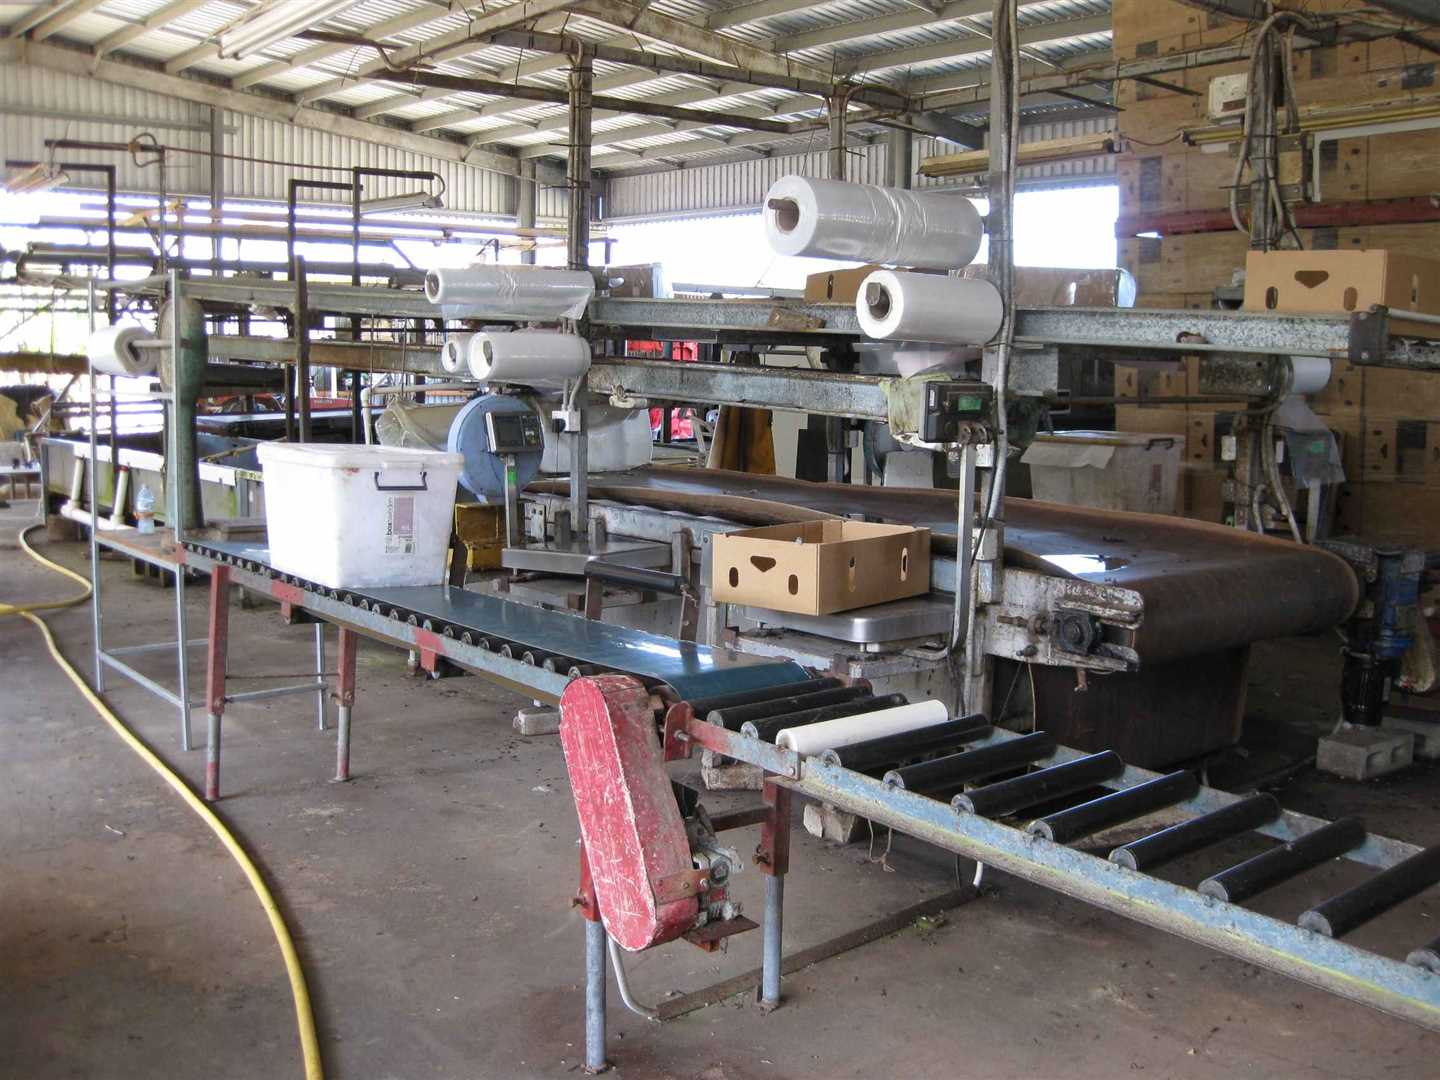 View of part of inside packing shed showing some packing shed items including part of banana trough